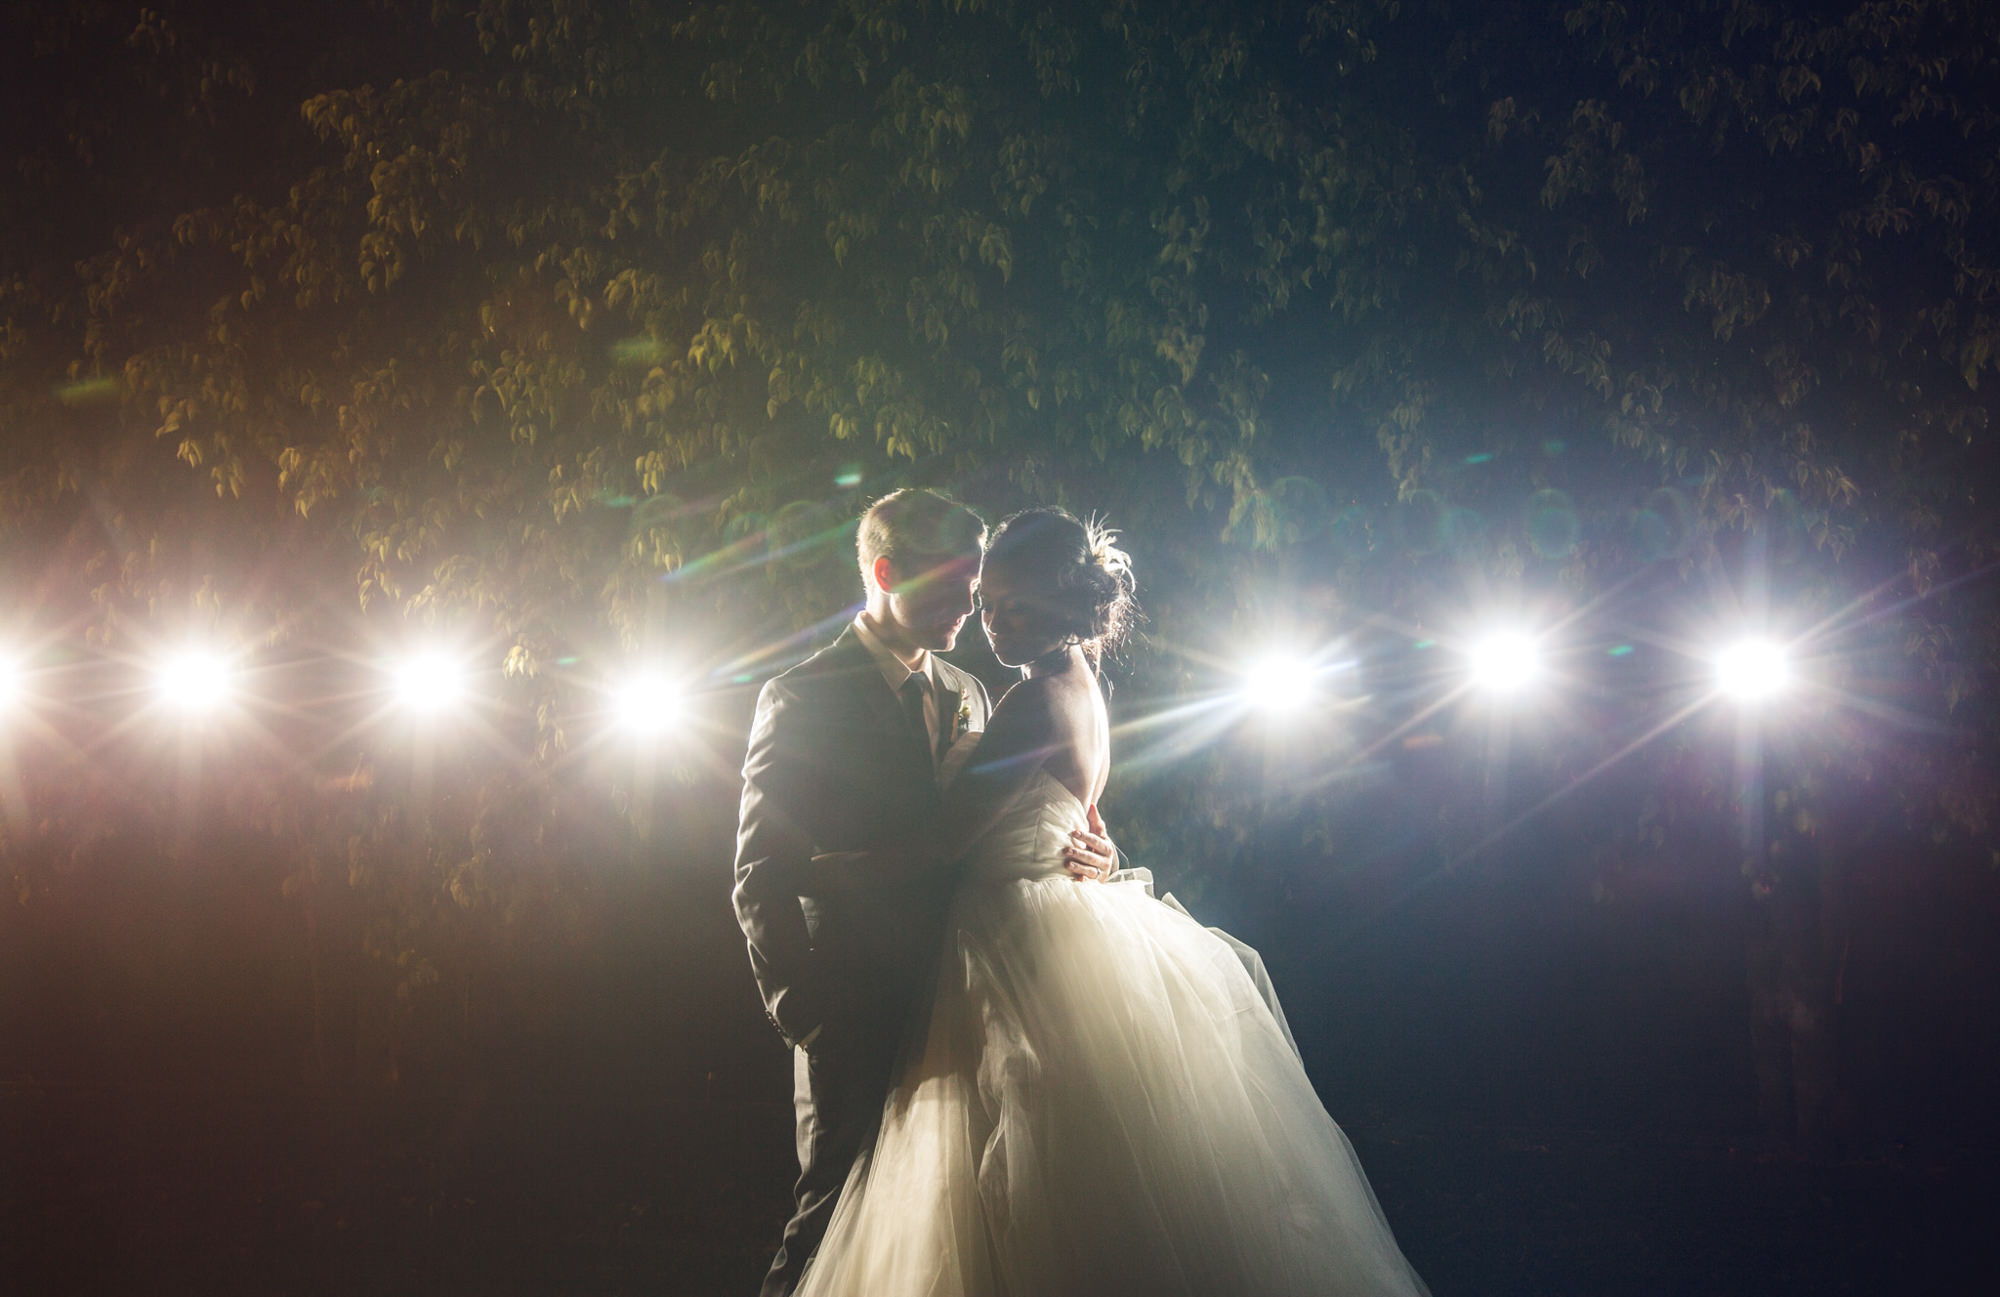 Creative partial silhouette of couple with strobes, by Jeff Newsom